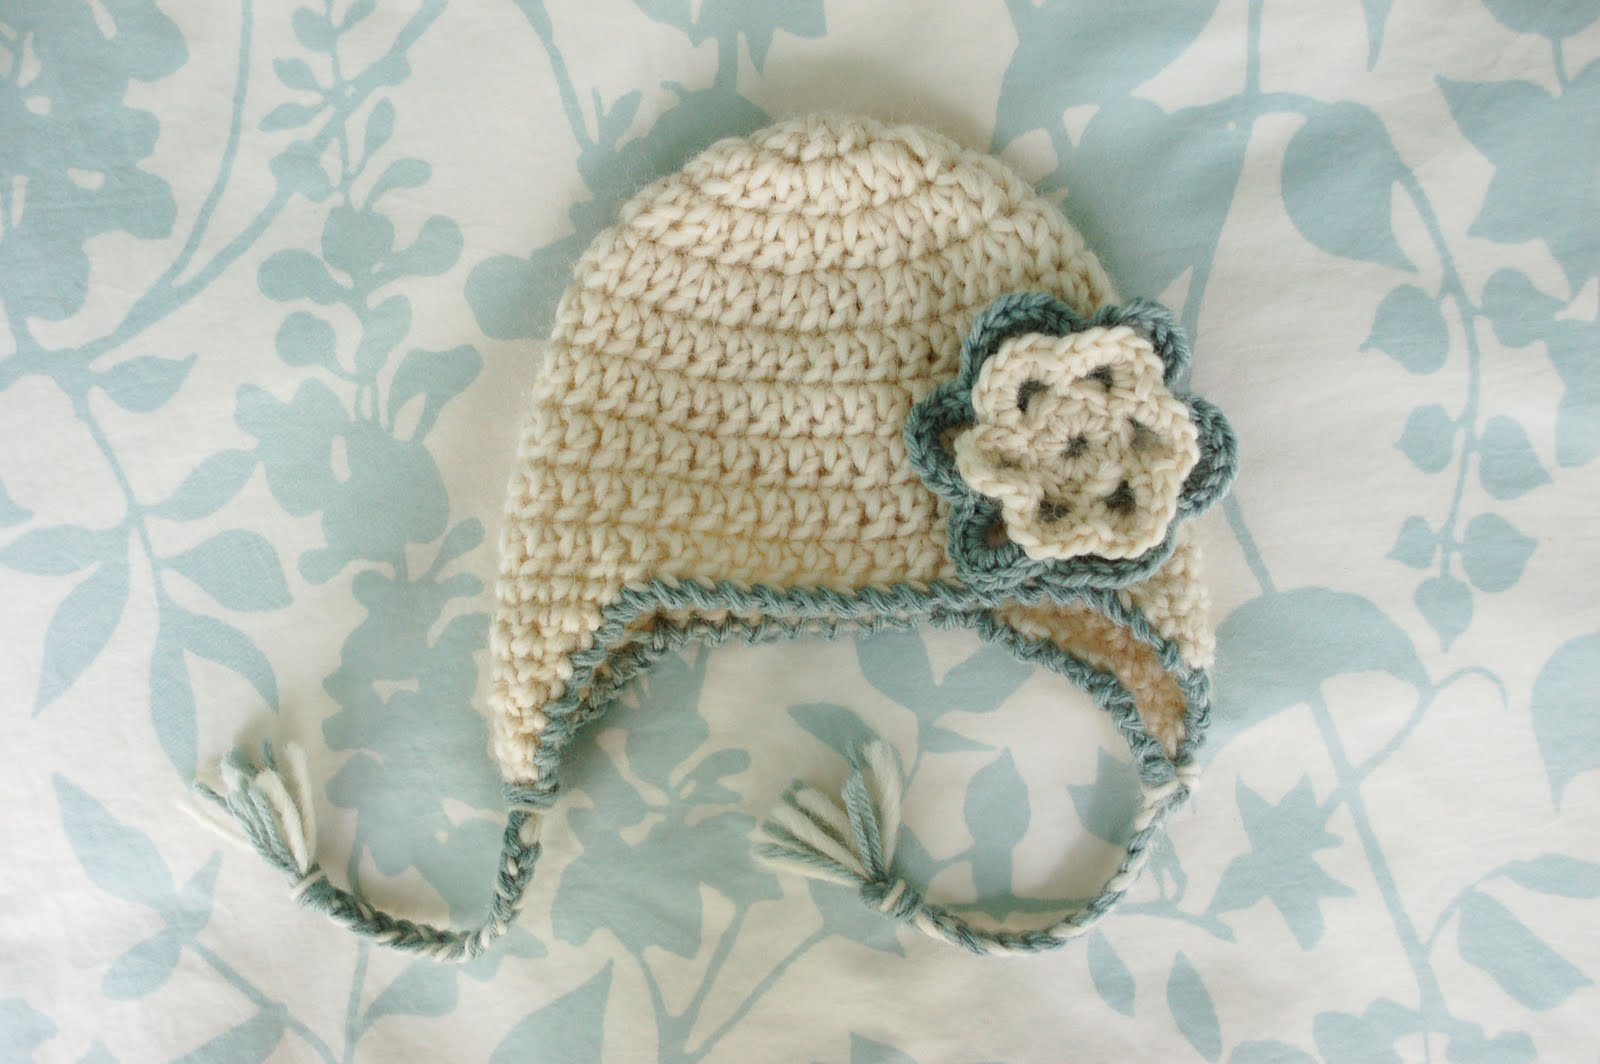 Crochet For Free: Newborn Earflap Hat